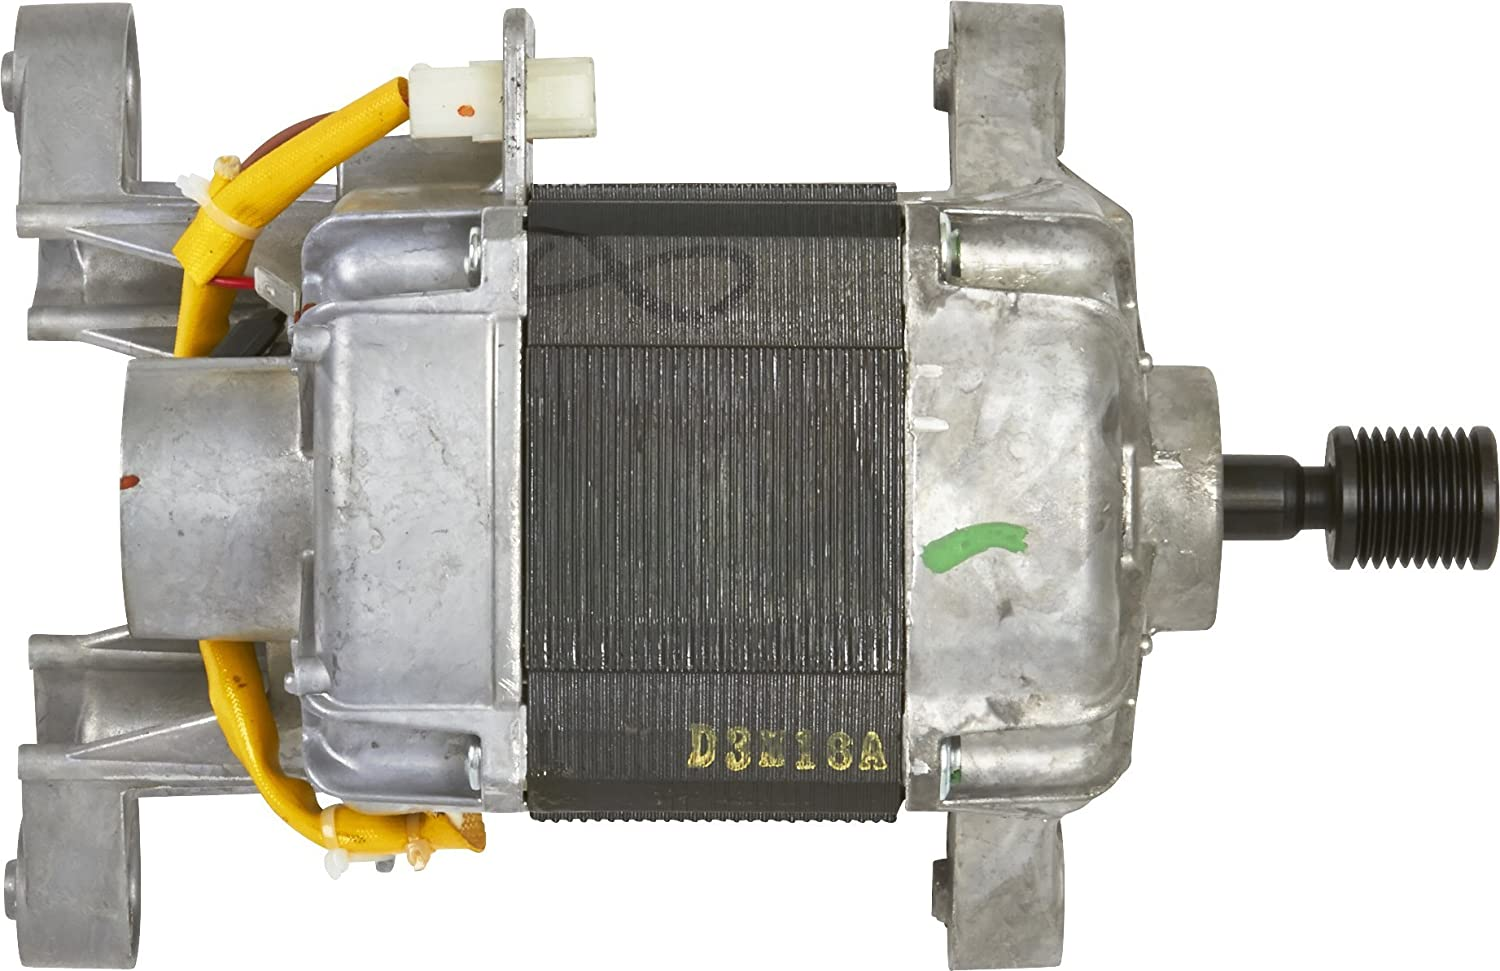 Electrolux 134638900 MOTOR,INDUCTION,CONTROLLED